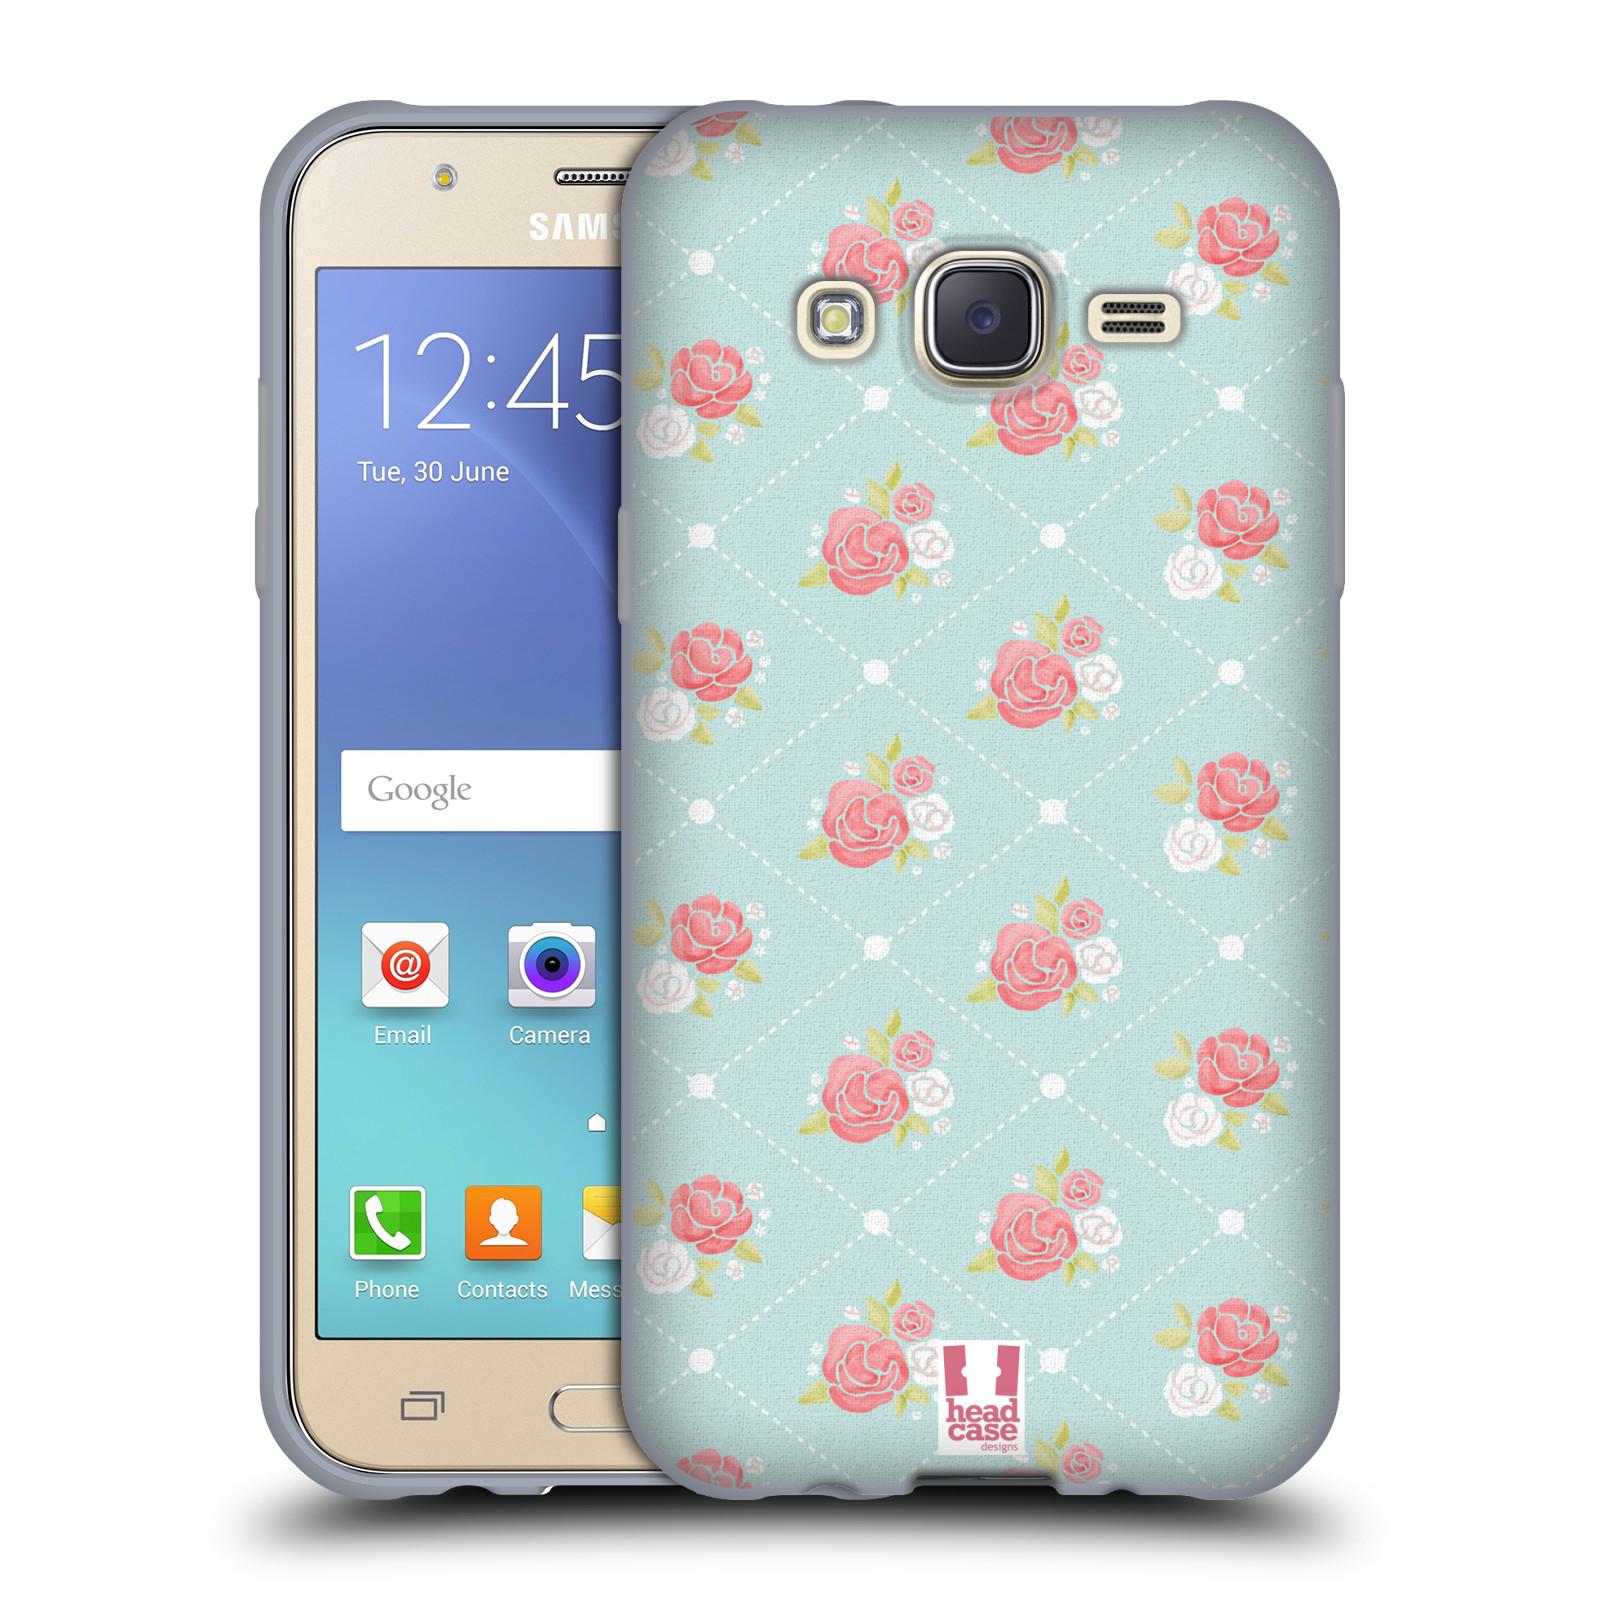 Head case designs pattern campagna francese case in gel for Case di campagna francese